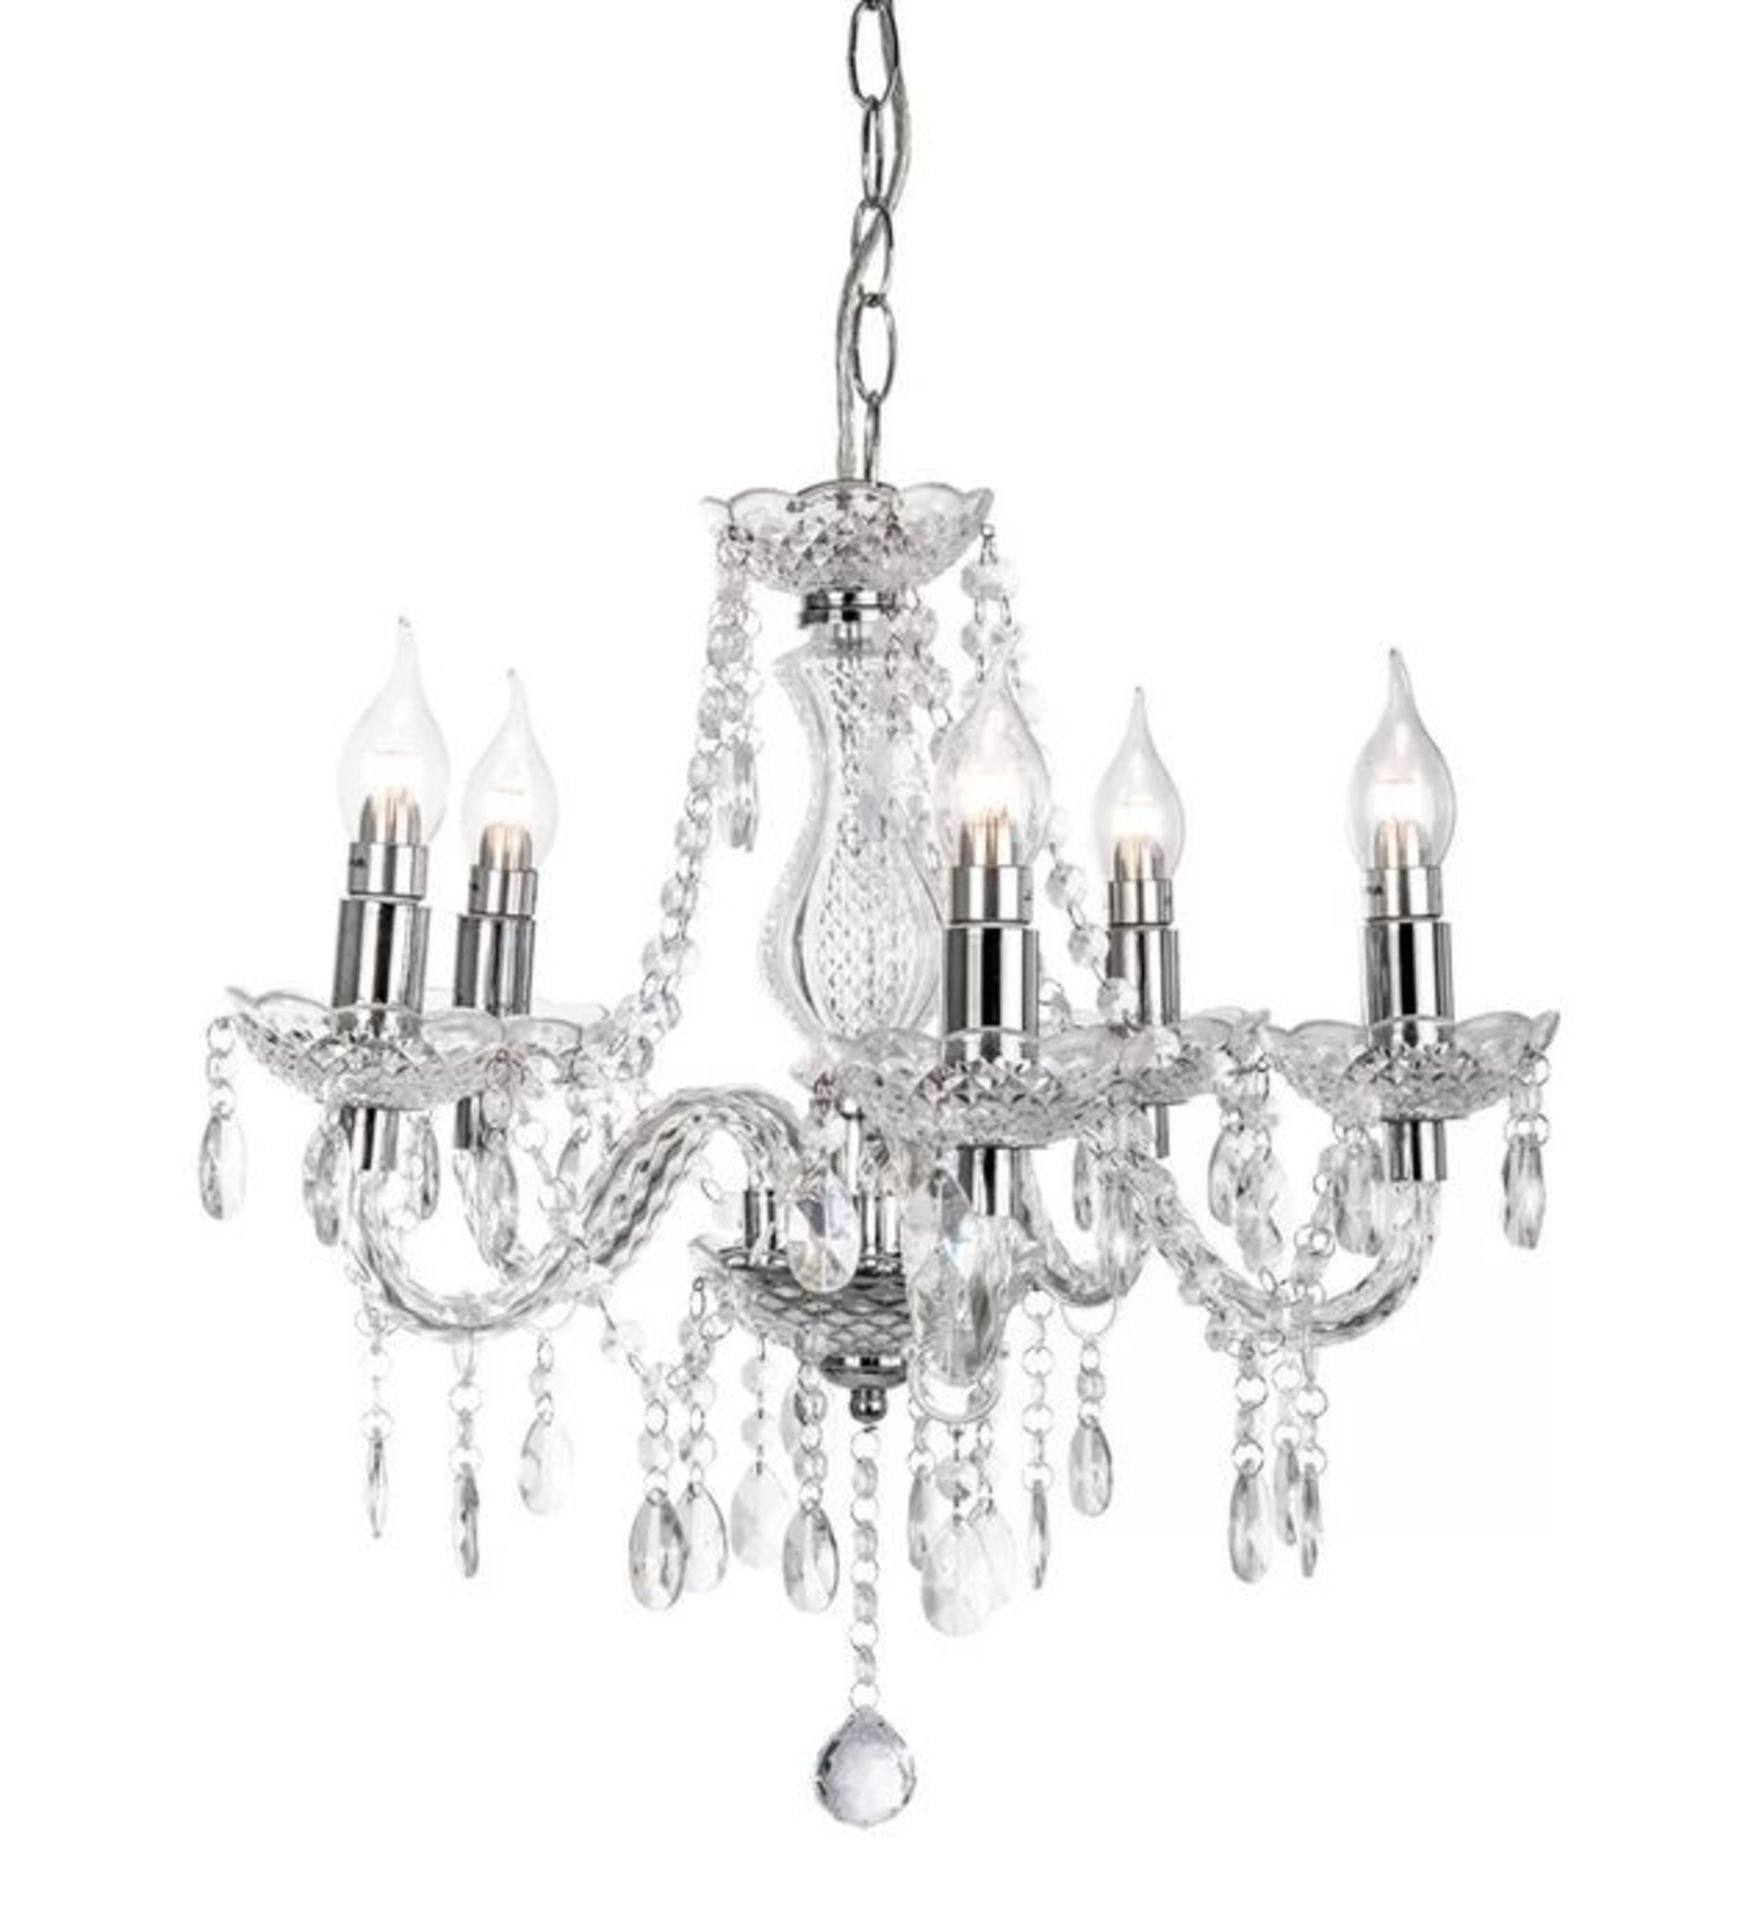 ROSDORF PARK® 5 LIGHT CANDLE-SHAPED PENDANT CHANDELIER WITH CRYSTAL DROPS,CLEAR